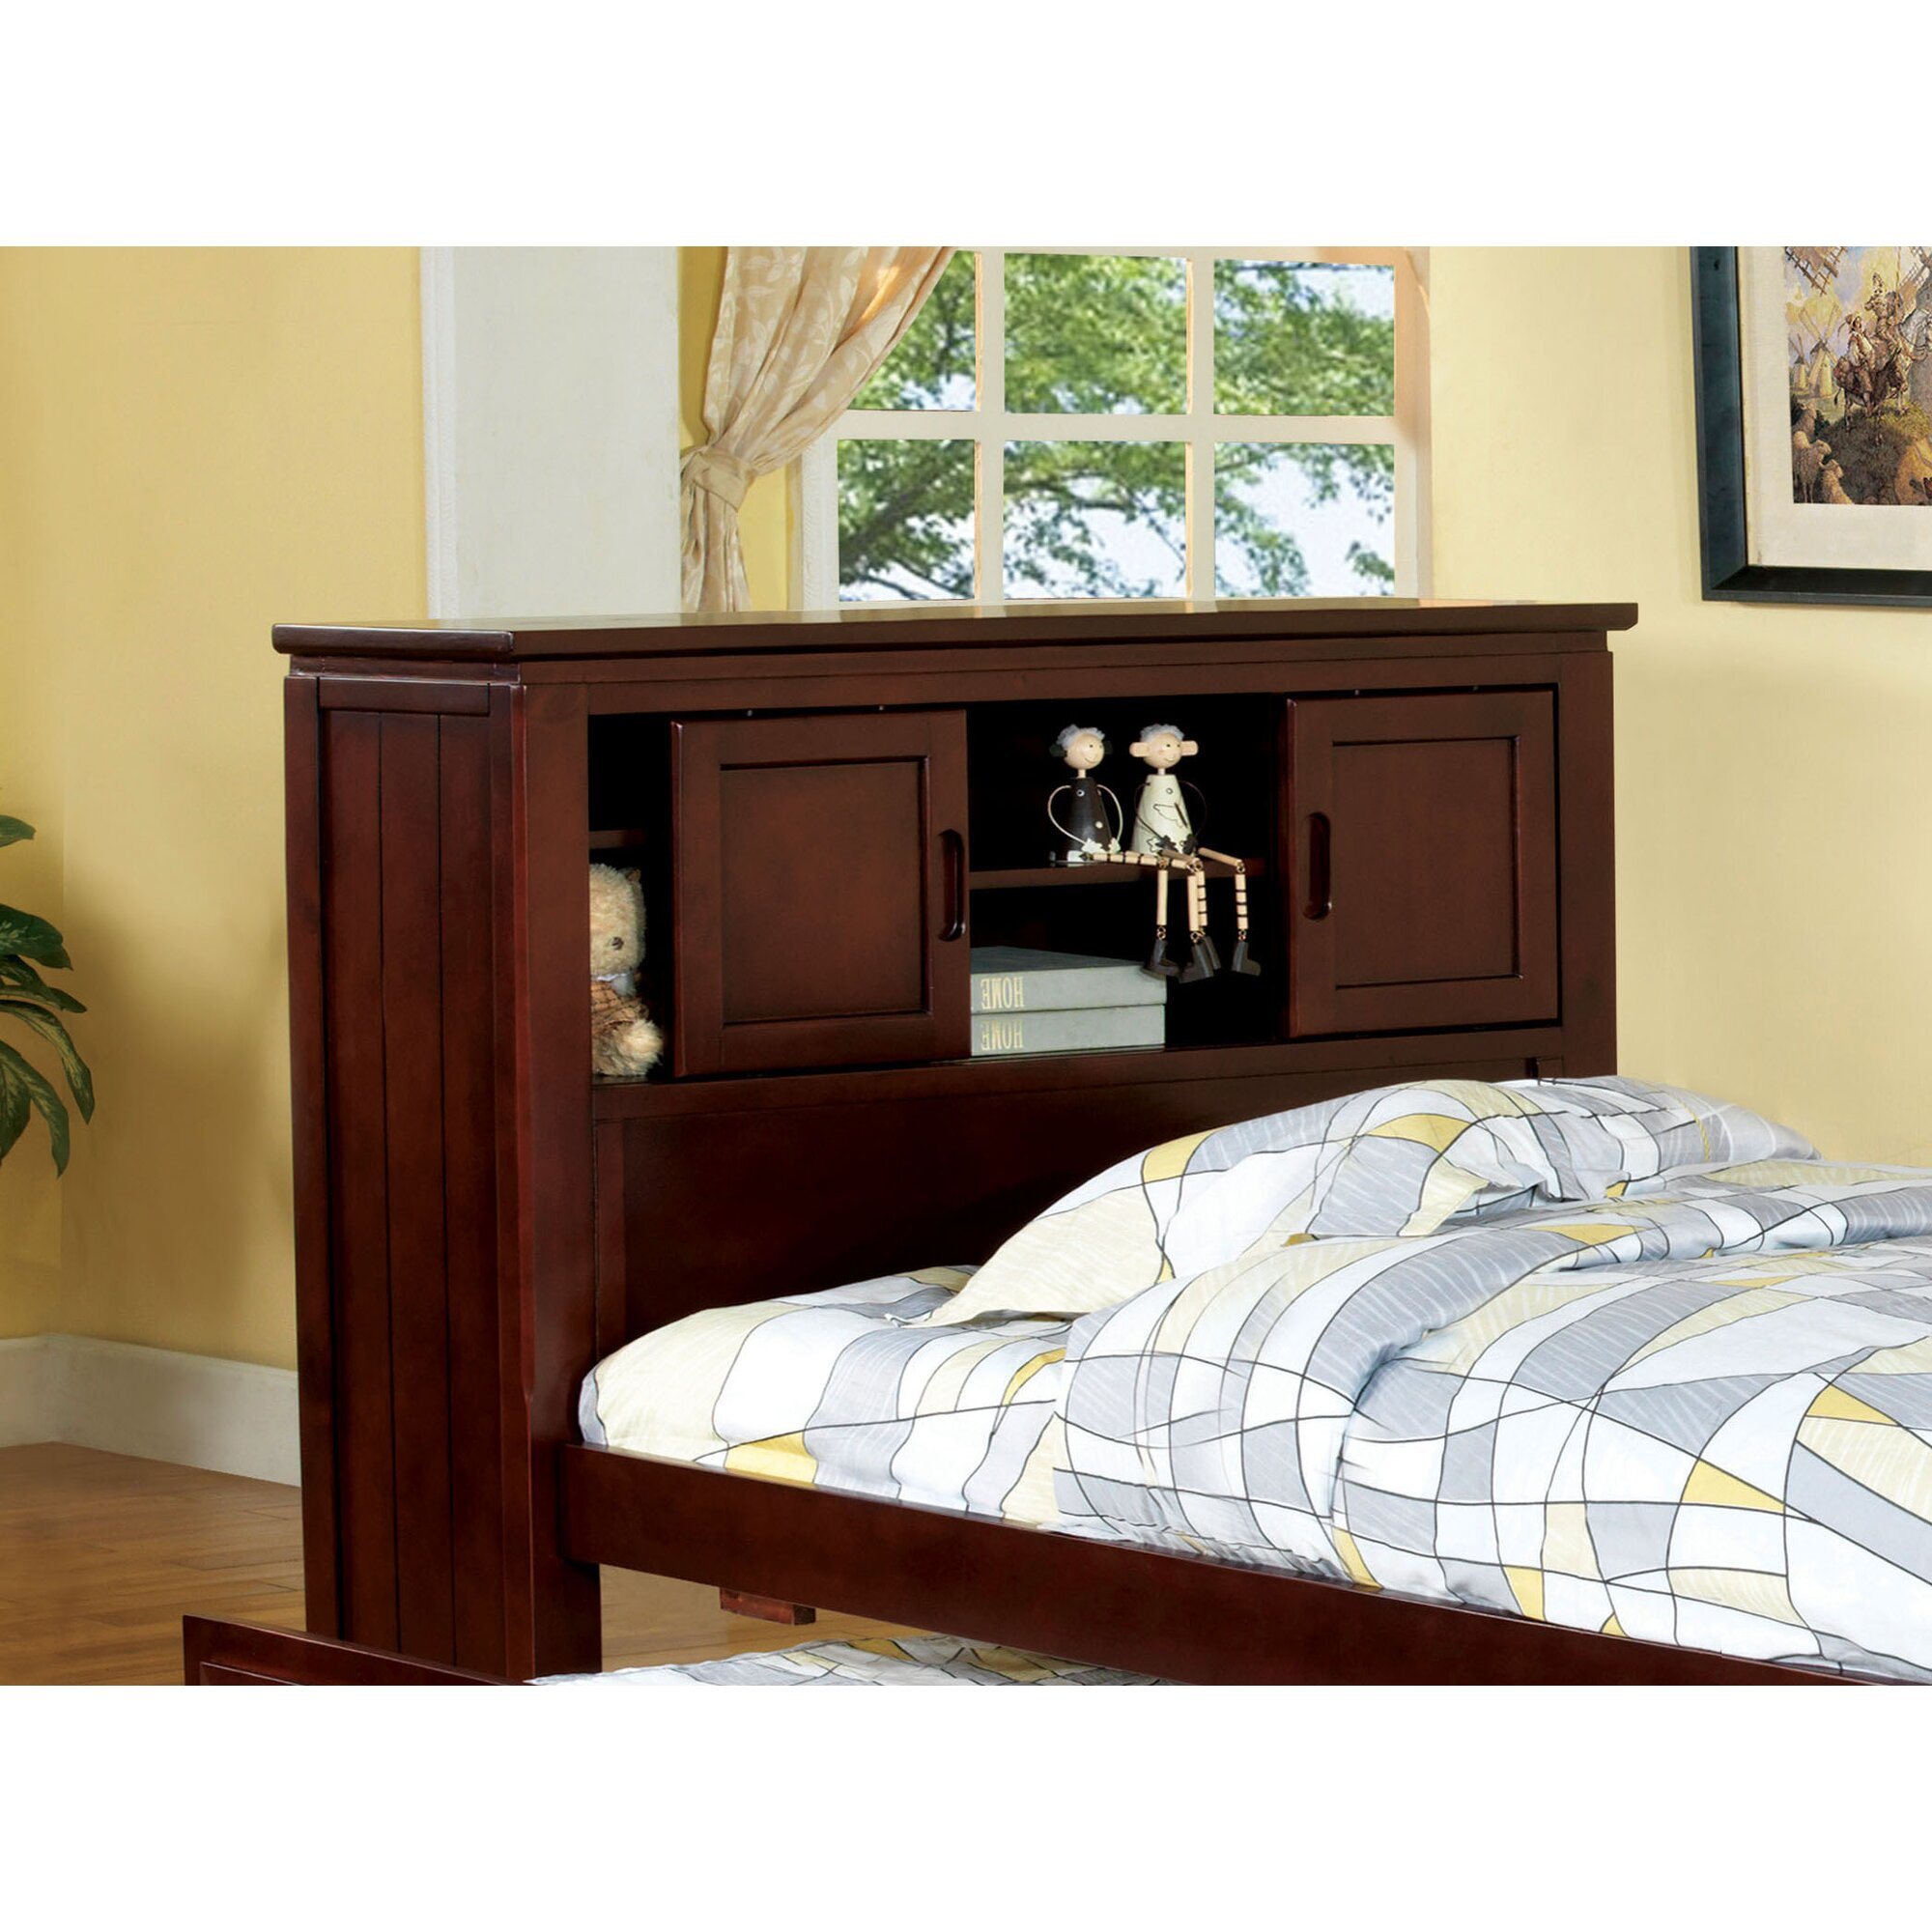 montana twin captain bed with trundle - Twin Captains Bed